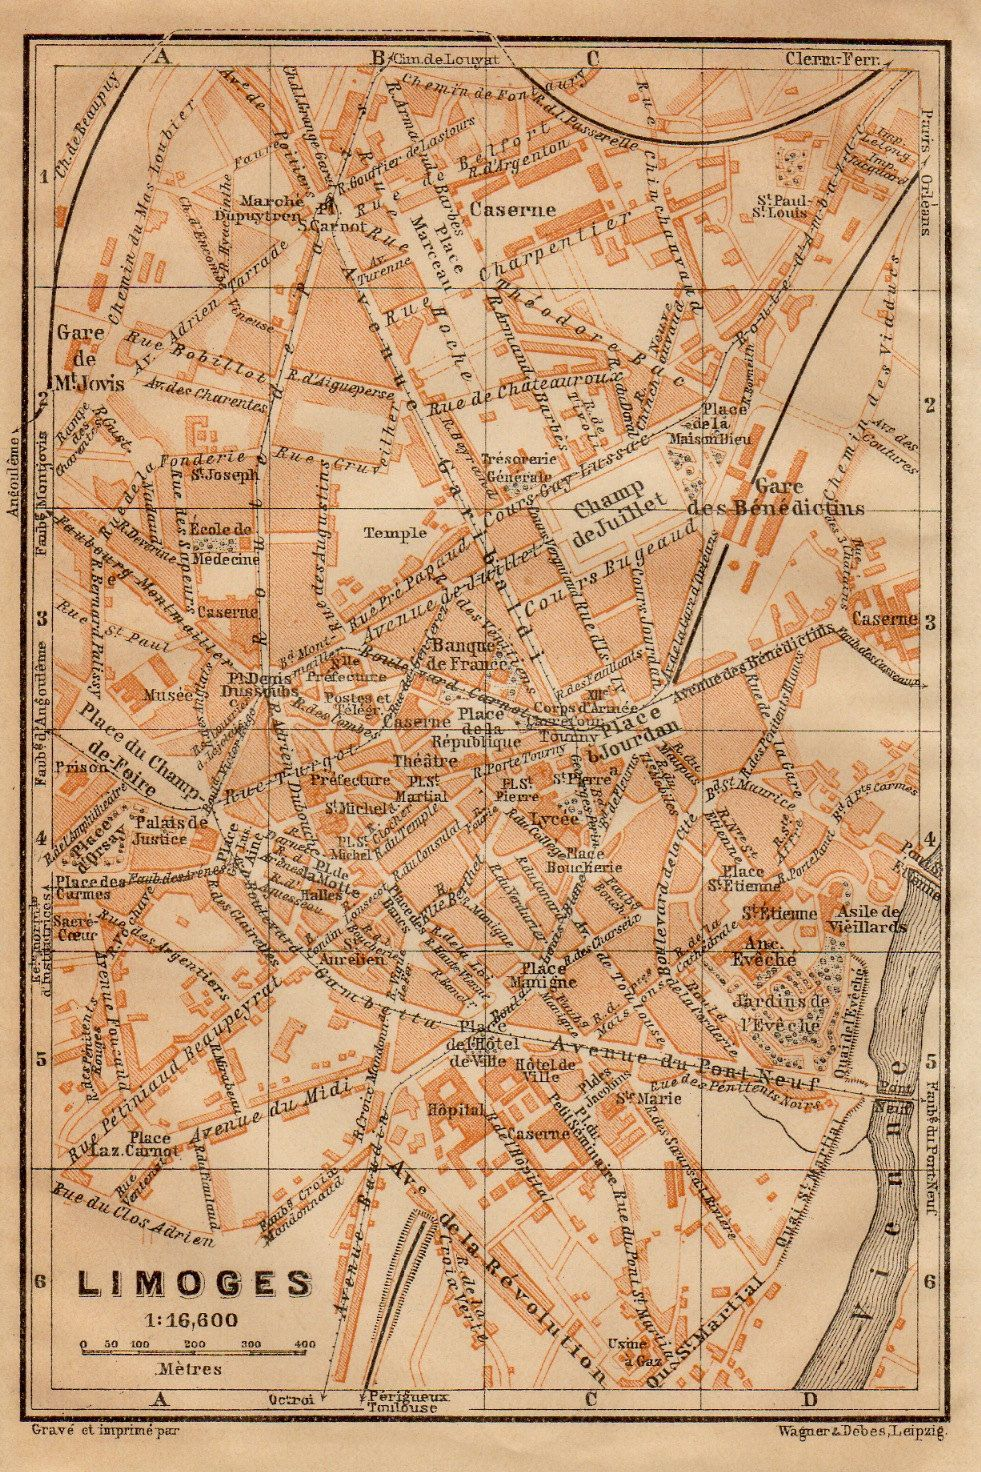 Limoges France Antique Map HauteVienne Limousin Region - Limoges france map